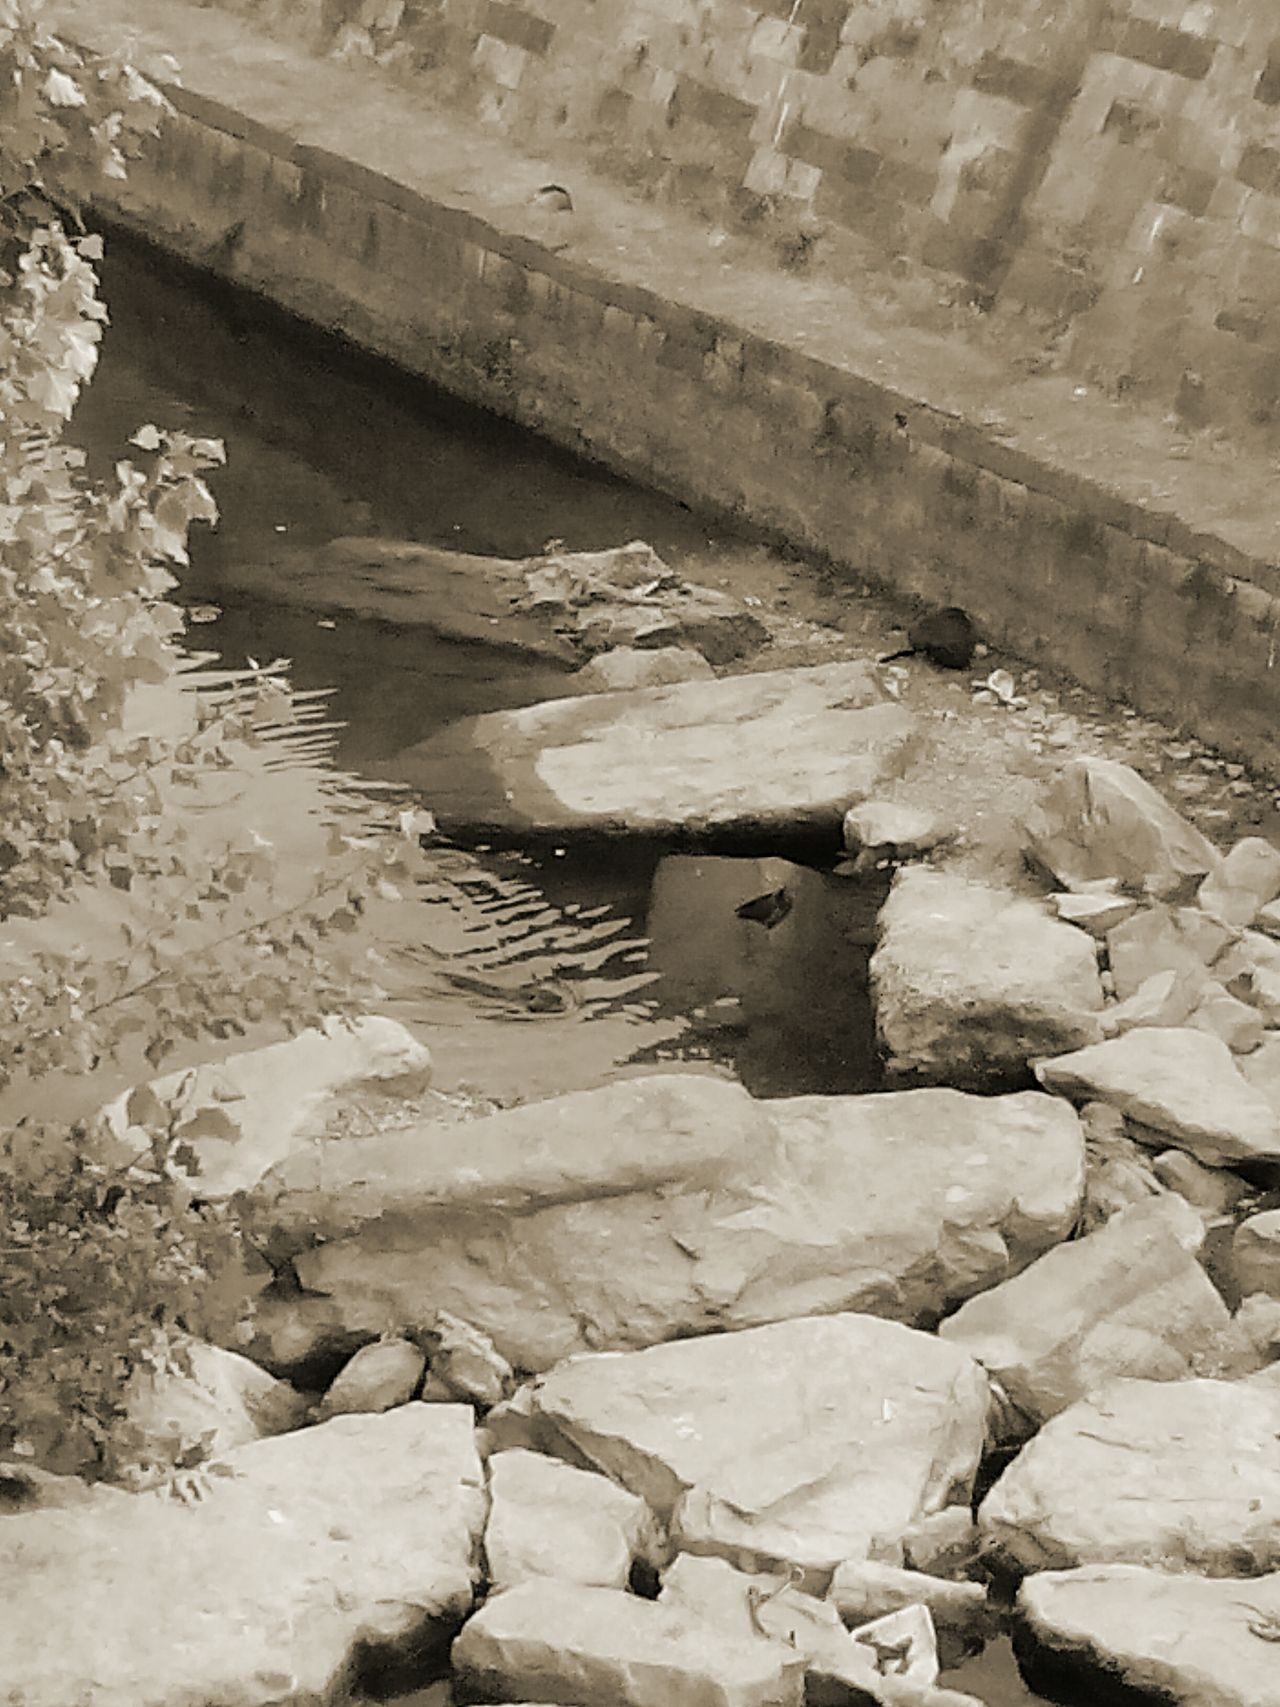 EyeEm Sepia Water And Nature Sepia_collection Naturephotography Sepia Photography Eyeemphotography EyeEm Sepia_Collection Rocks And Water Animals EyeEm Nature Lover Animal Themes Little River Water_collection Eye4photography  EyeEm Gallery Nature Sepiaphoto Eyeem Sepia Water Animal Photography Birds In Nature River Check This Out Rocks